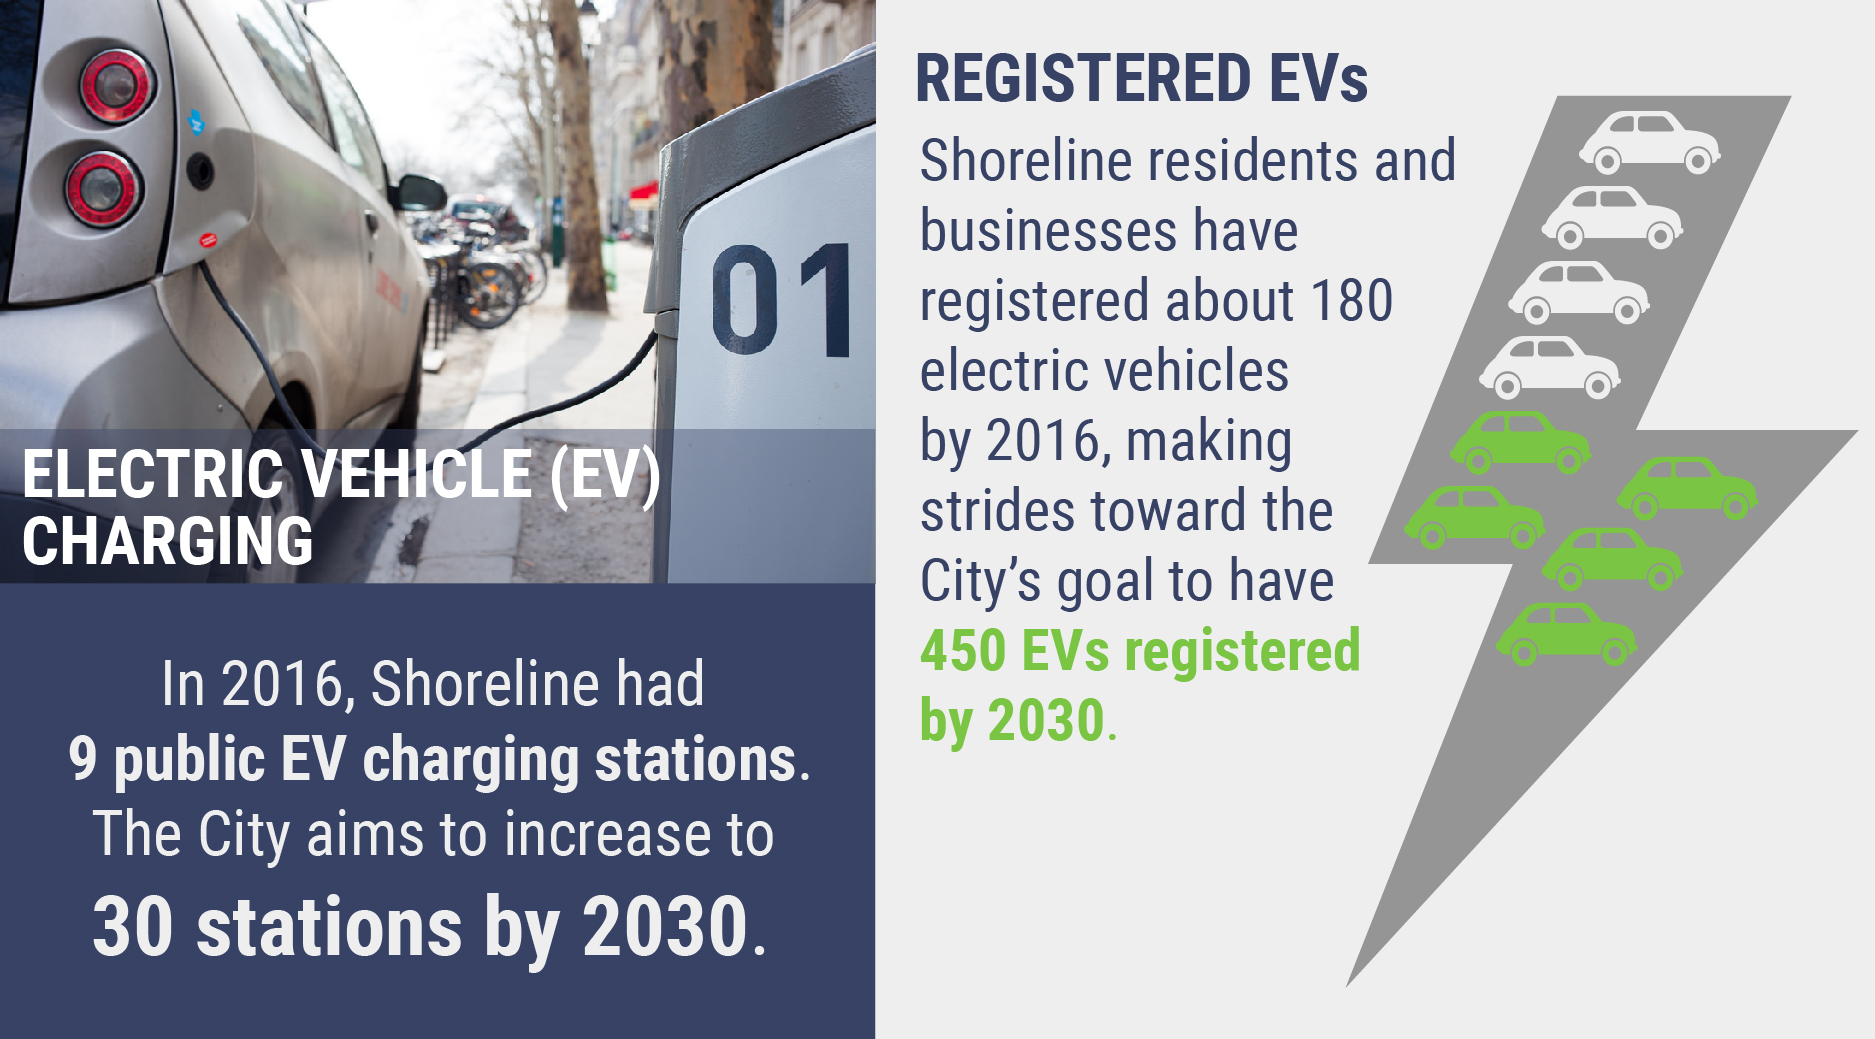 "Infographic ""In 2016, Shoreline had 9 public EV charging stations. The City aims to increase to 30 stations by 2030."" Also states, ""Shoreline residents and businesses have registered about 180 electric vehicles by 2016, making strides toward the City's goal to have 450 EVs registered by 2030."""